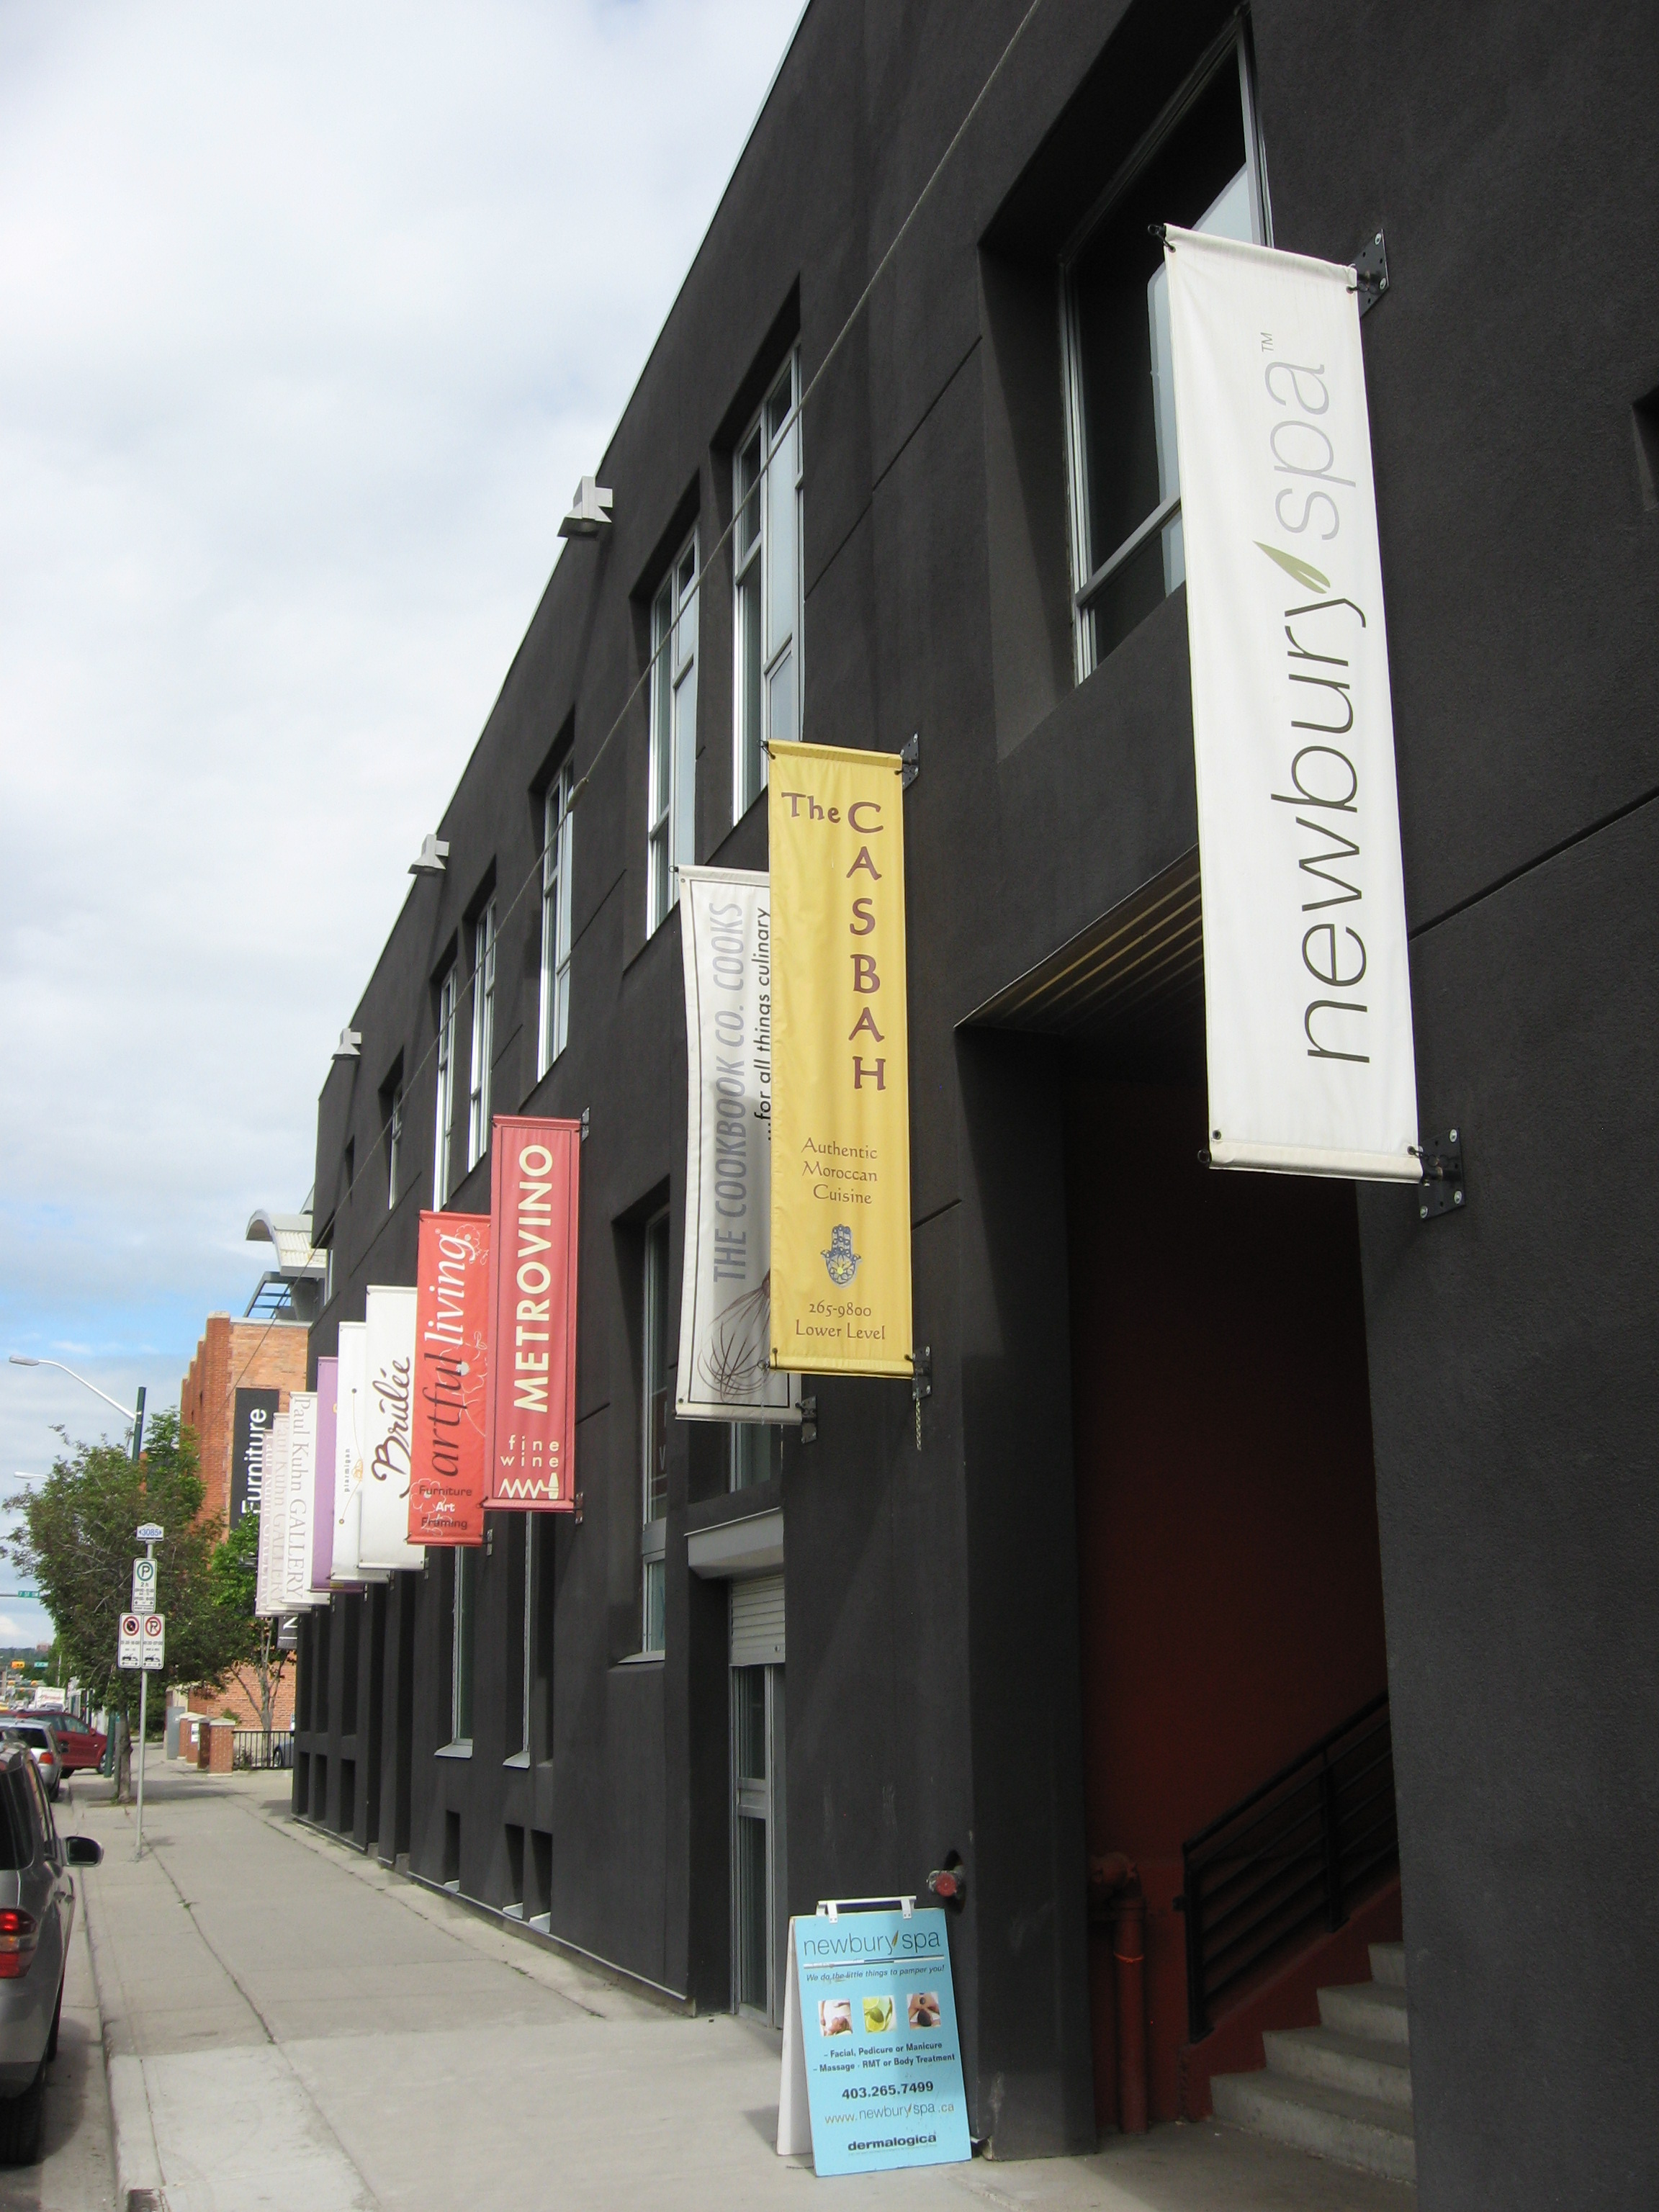 Calgary's Design District offers great restaurants, galleries and design shops.